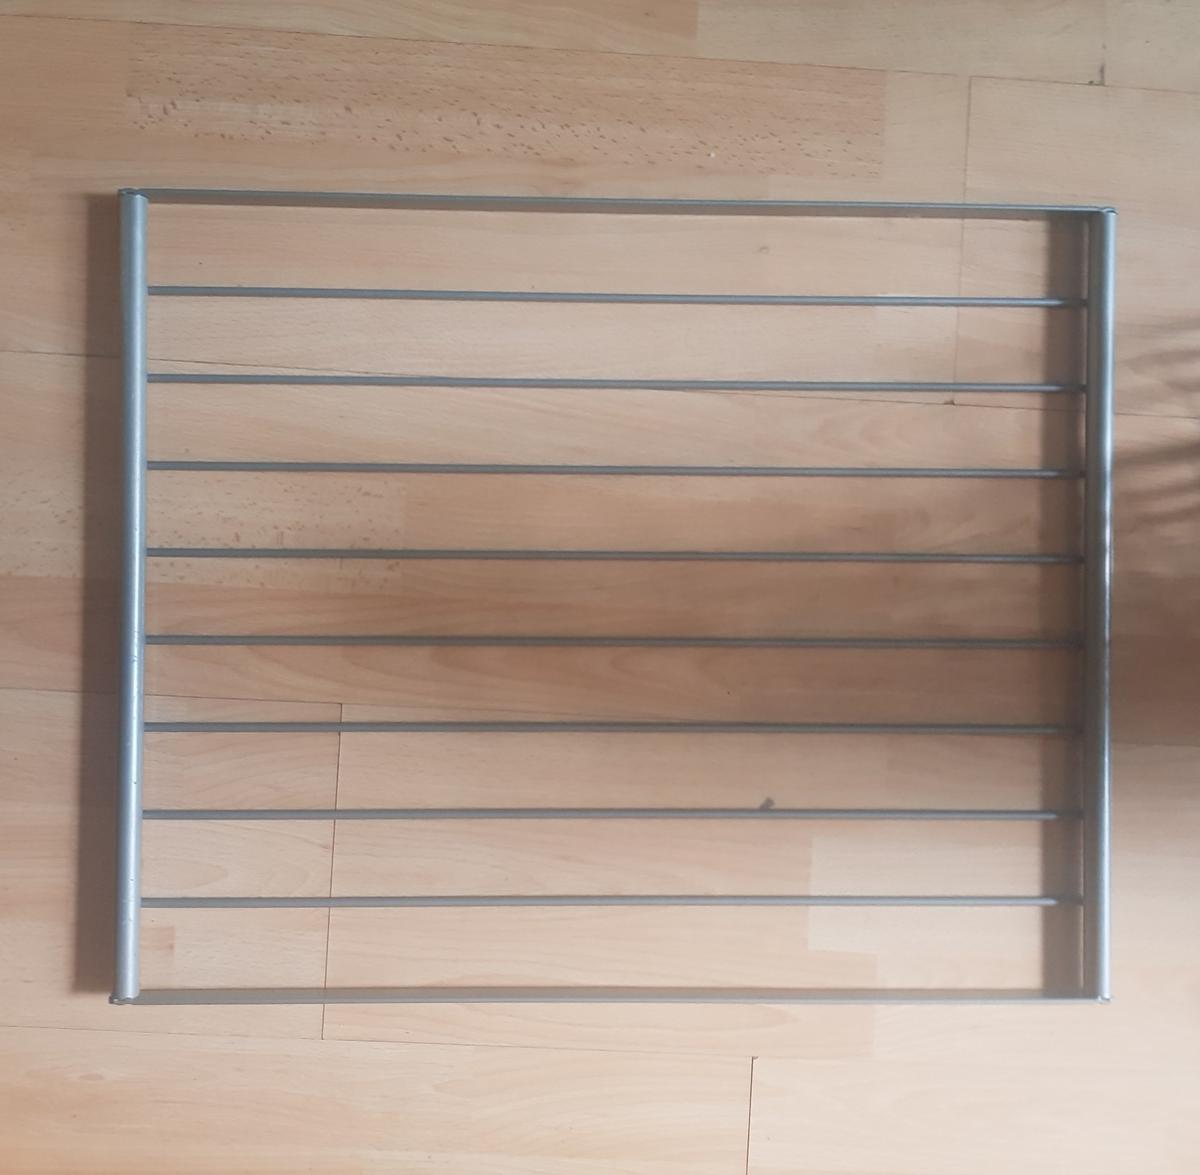 Why not take the time to organise your space with this great package or wardrobe sorting accessories?  Our Pax Wardrobe was dismantled and sold and I now have these items left for sale.  All to fit 53.5 x 43.5 approx  5 wire shelves 1 trouser rail hanger  2 clothes rails (46.5cm)  (some fitting rails and screws supplied too)  Item to be collected from St.Johns, Lewisham.